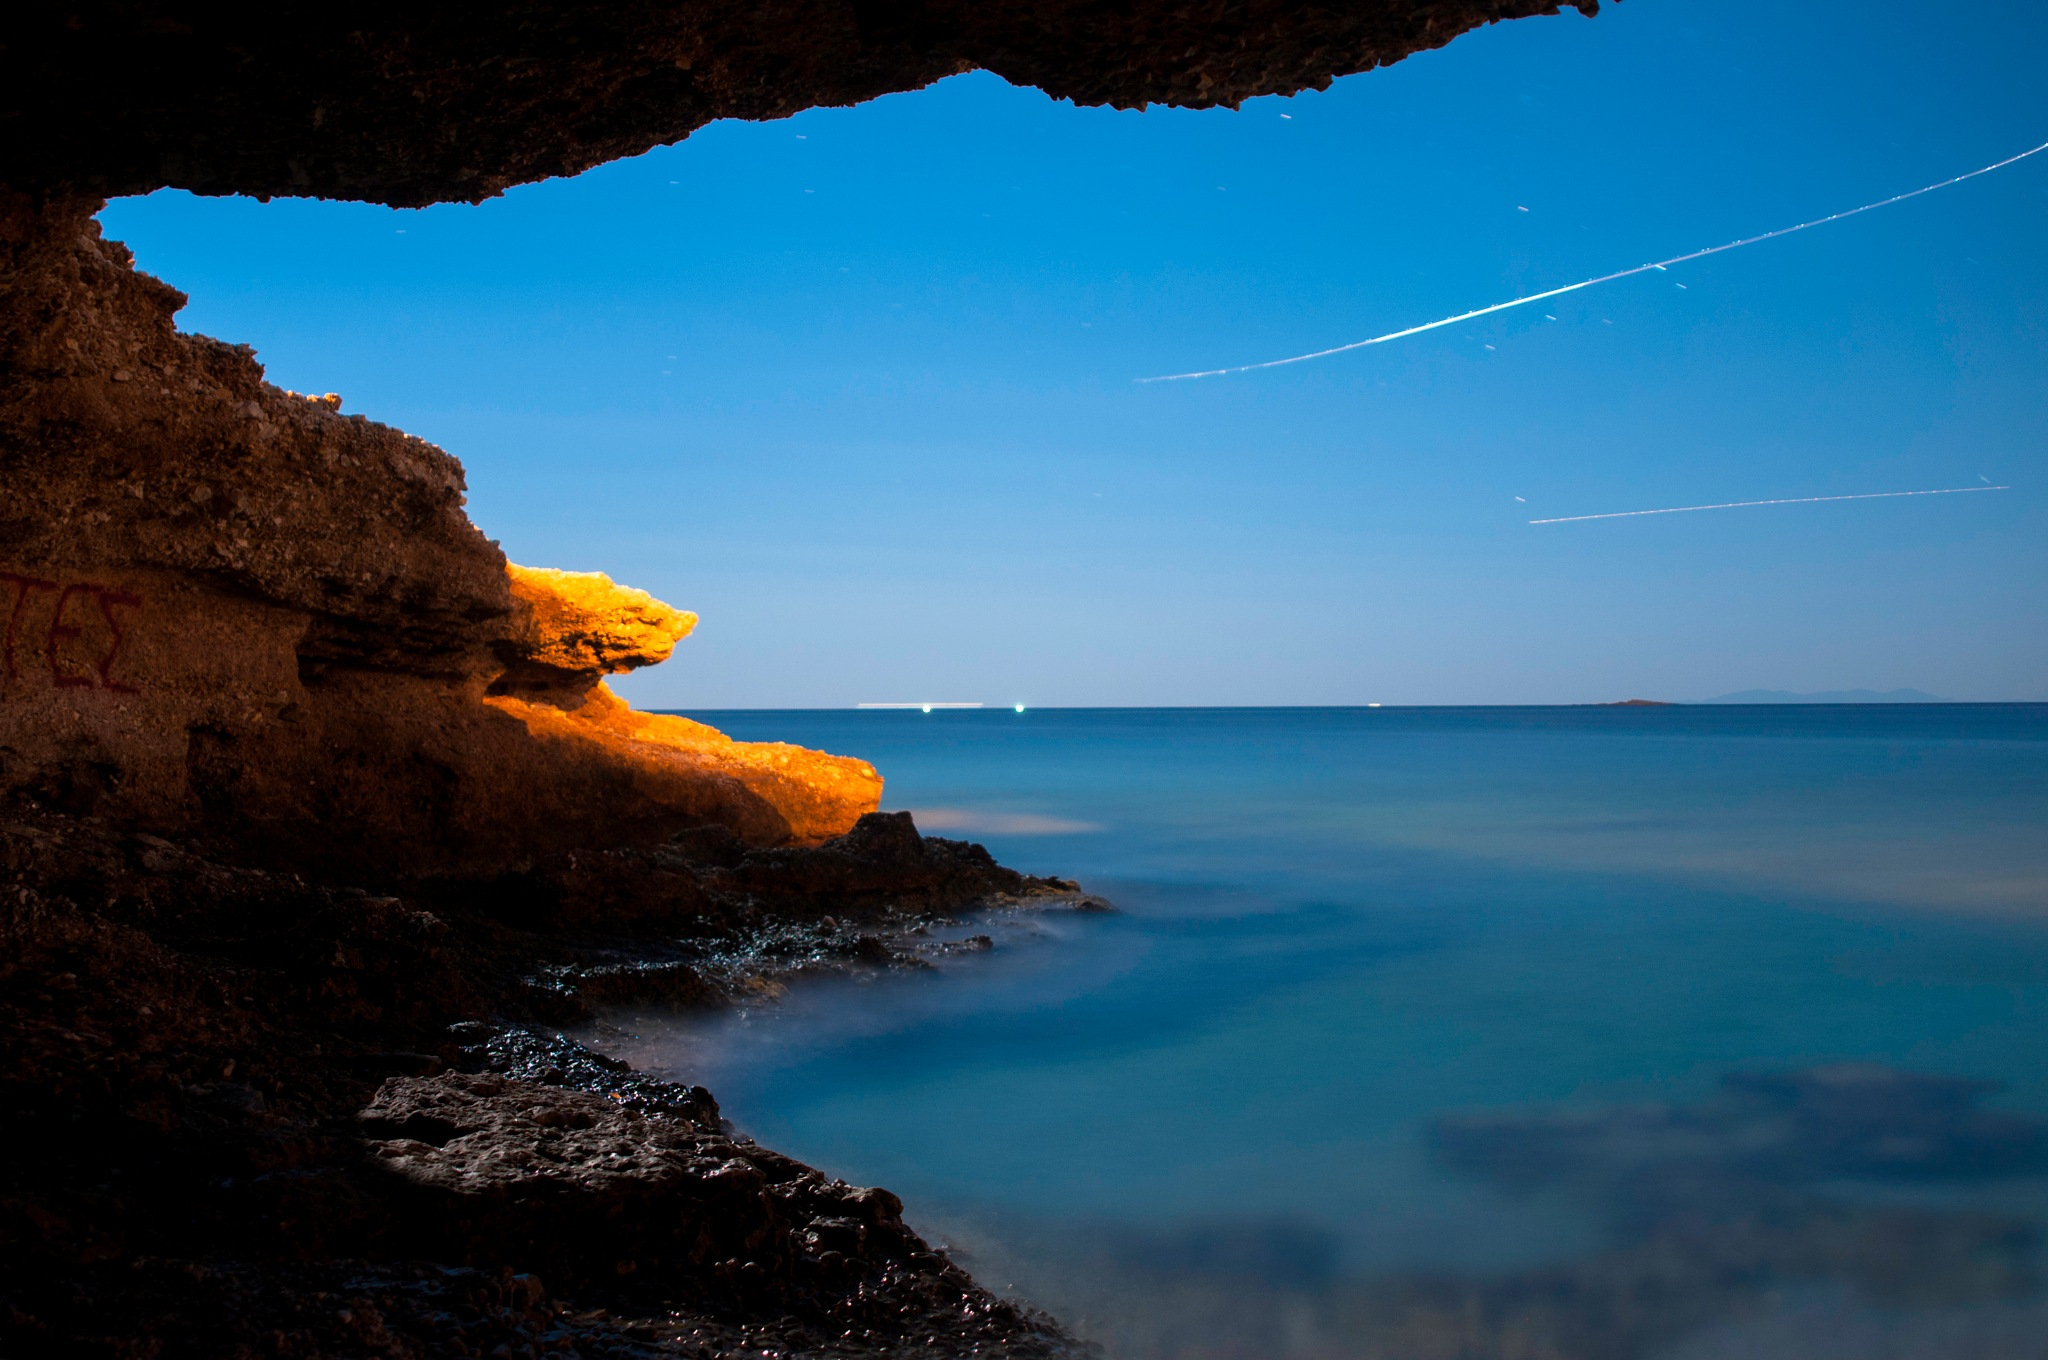 Sea at night #1 by stratos